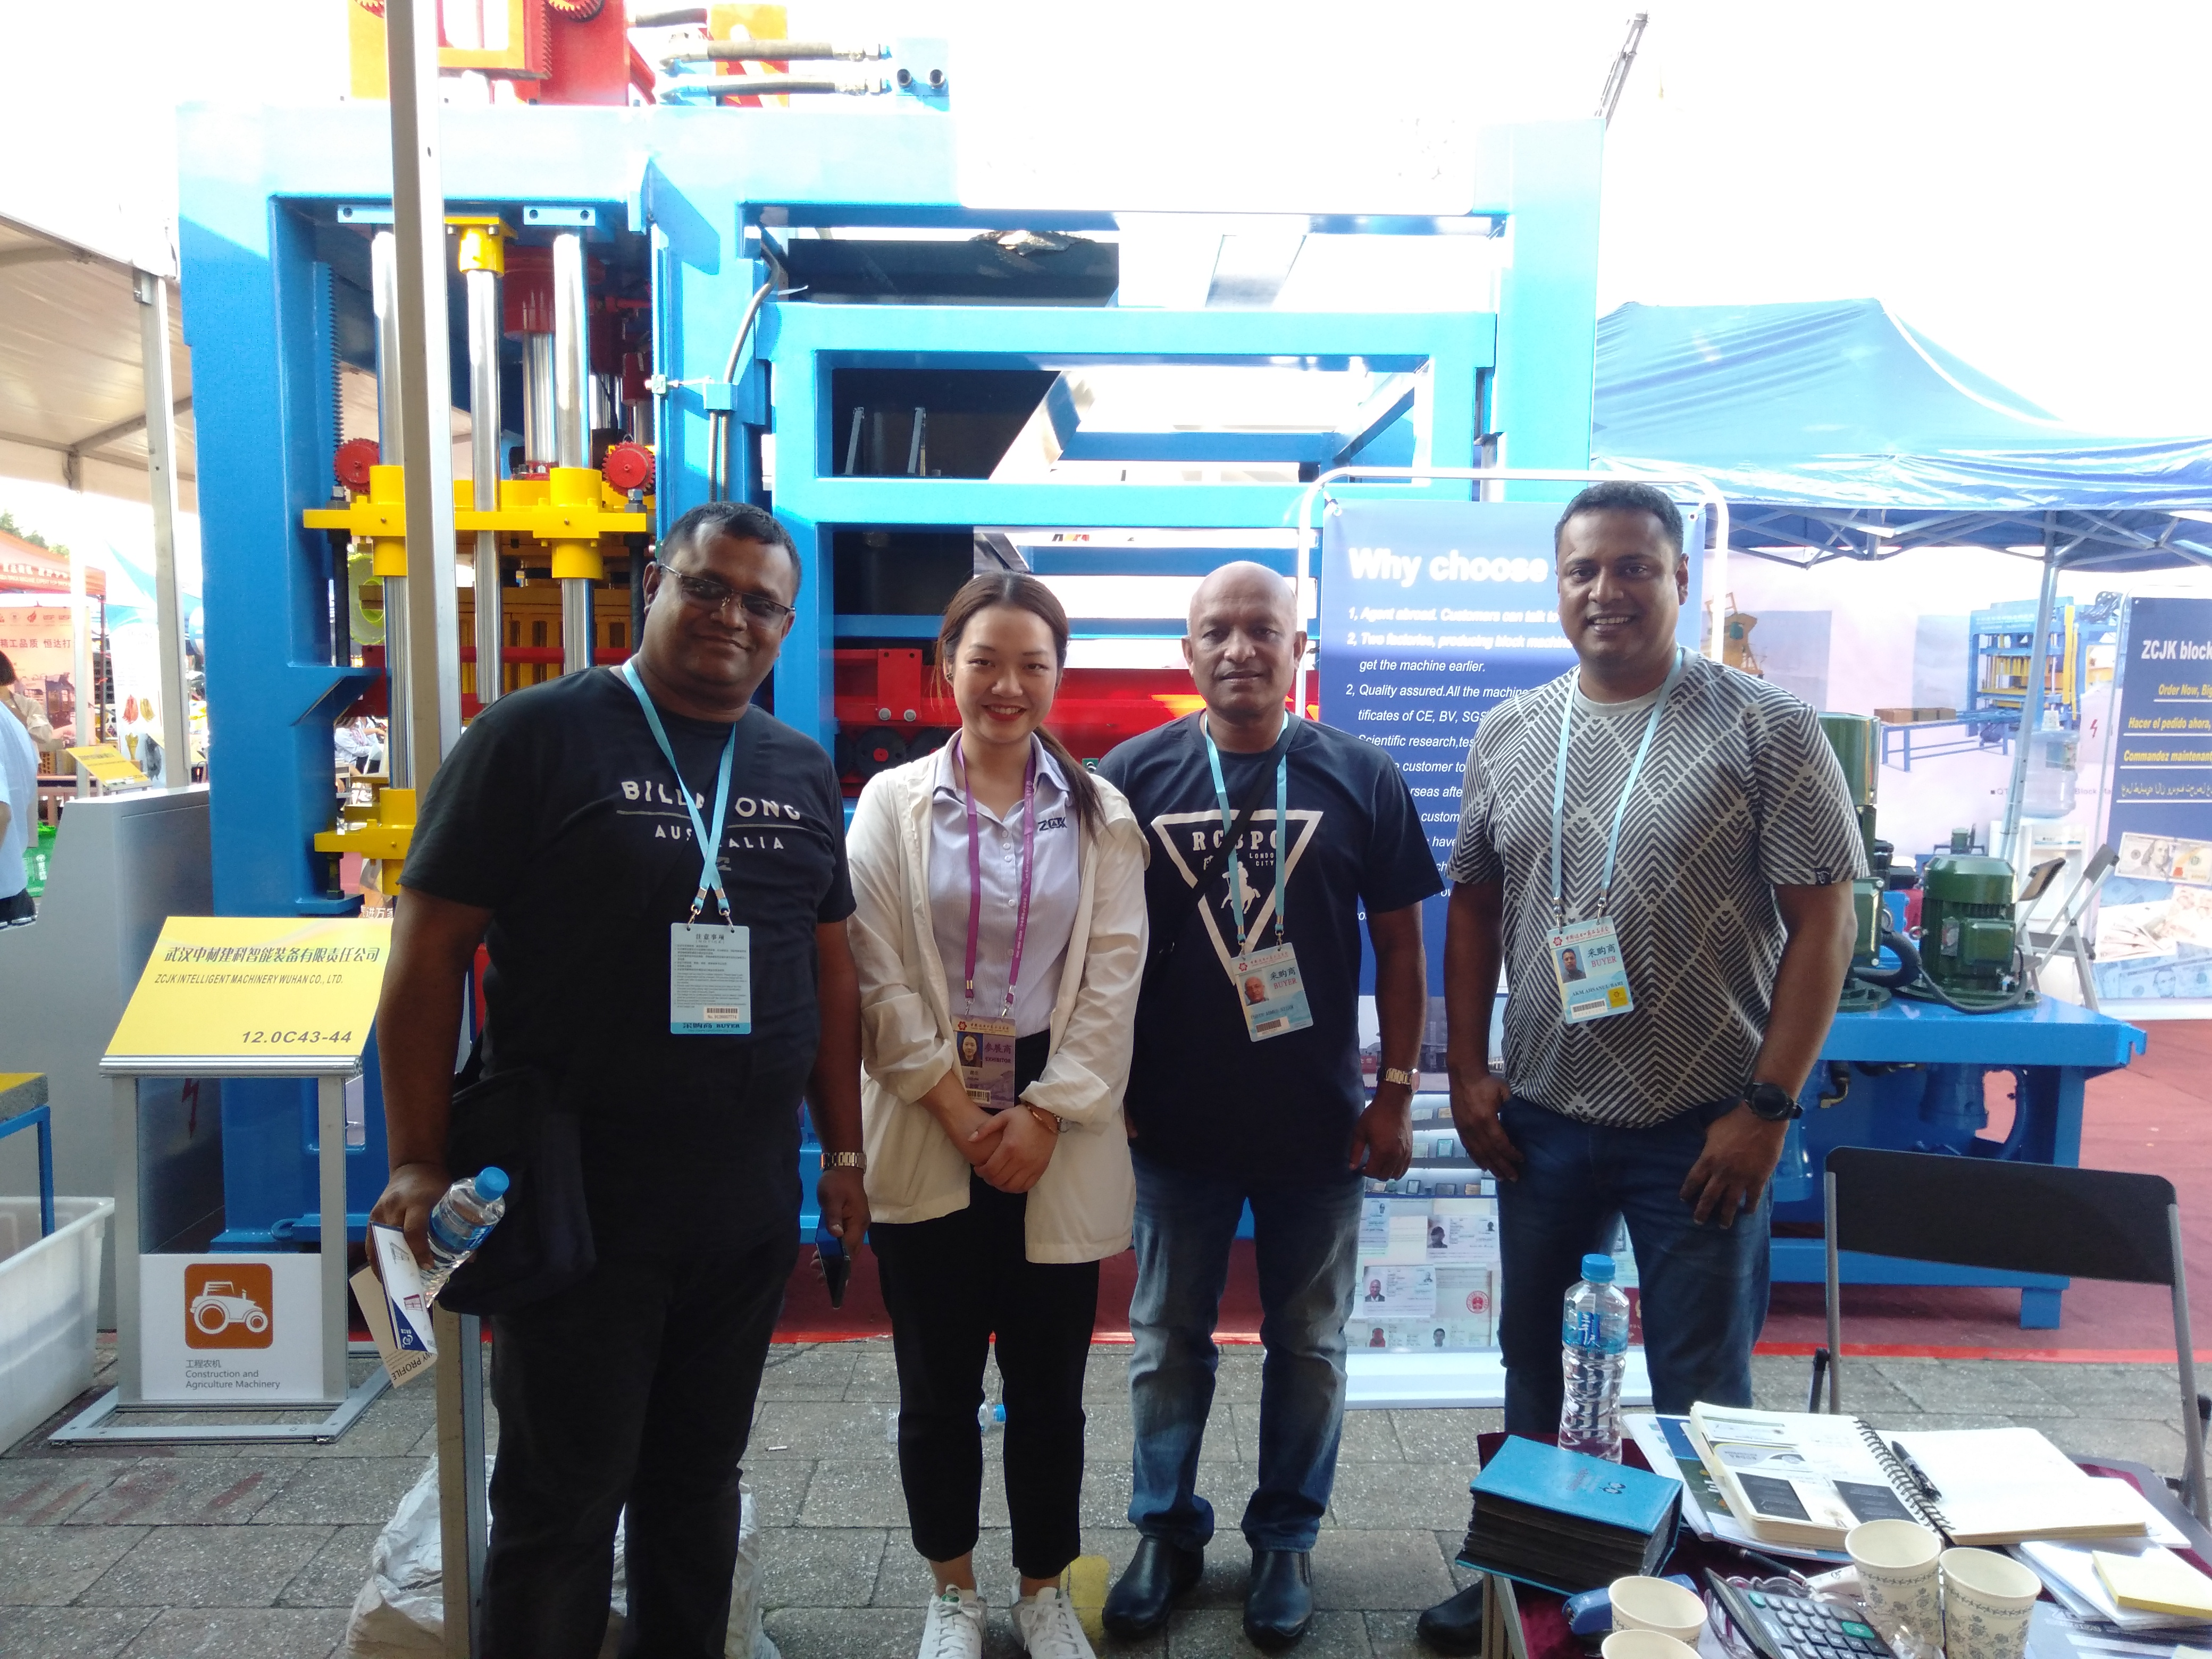 4th day in ZCJK Booth:12.OC43&44 - ZCJK Machine attending the Canton Fair